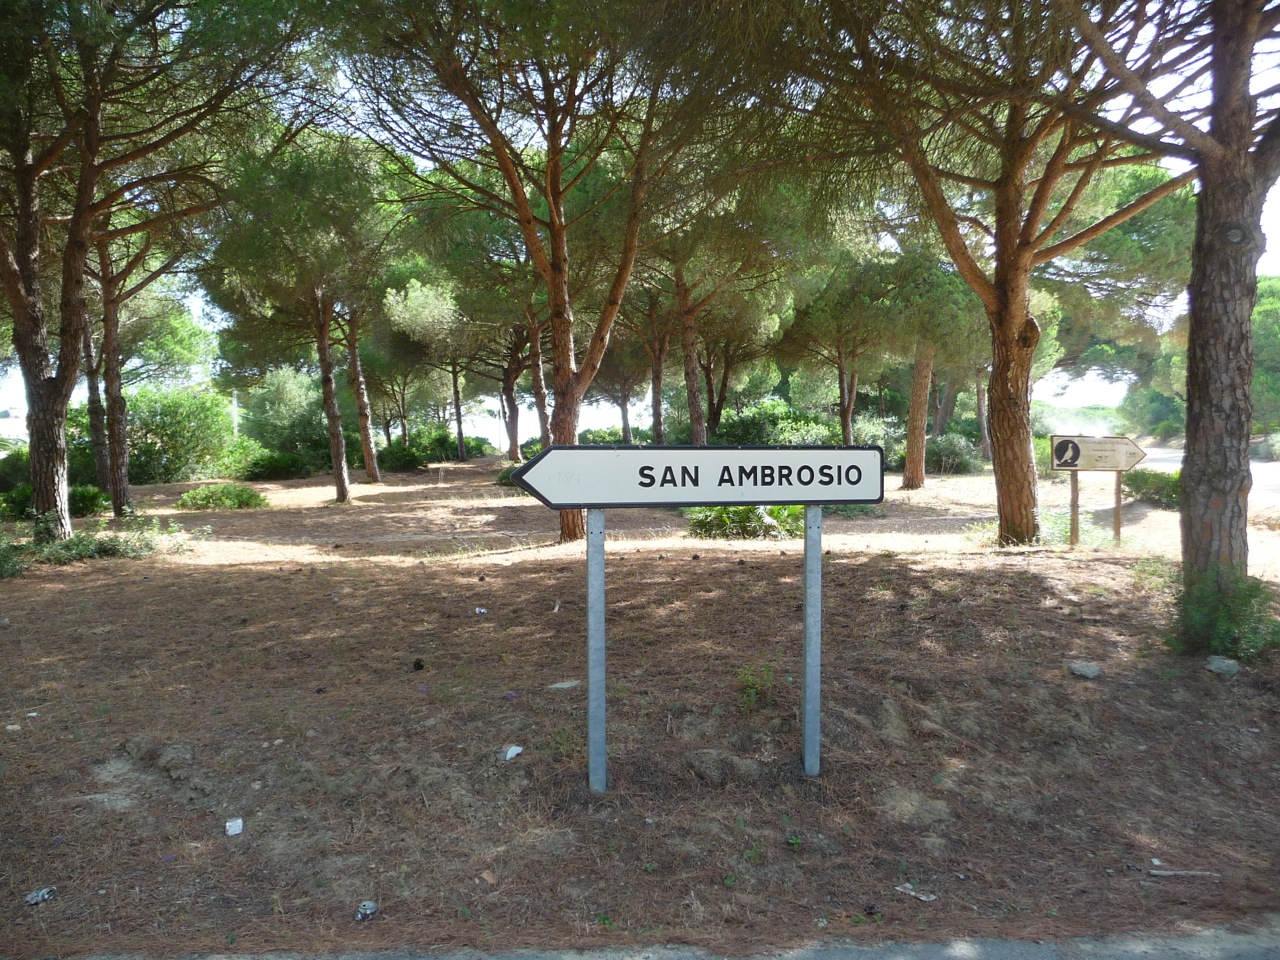 Where I Fell In Love With Spain, San Ambrosio